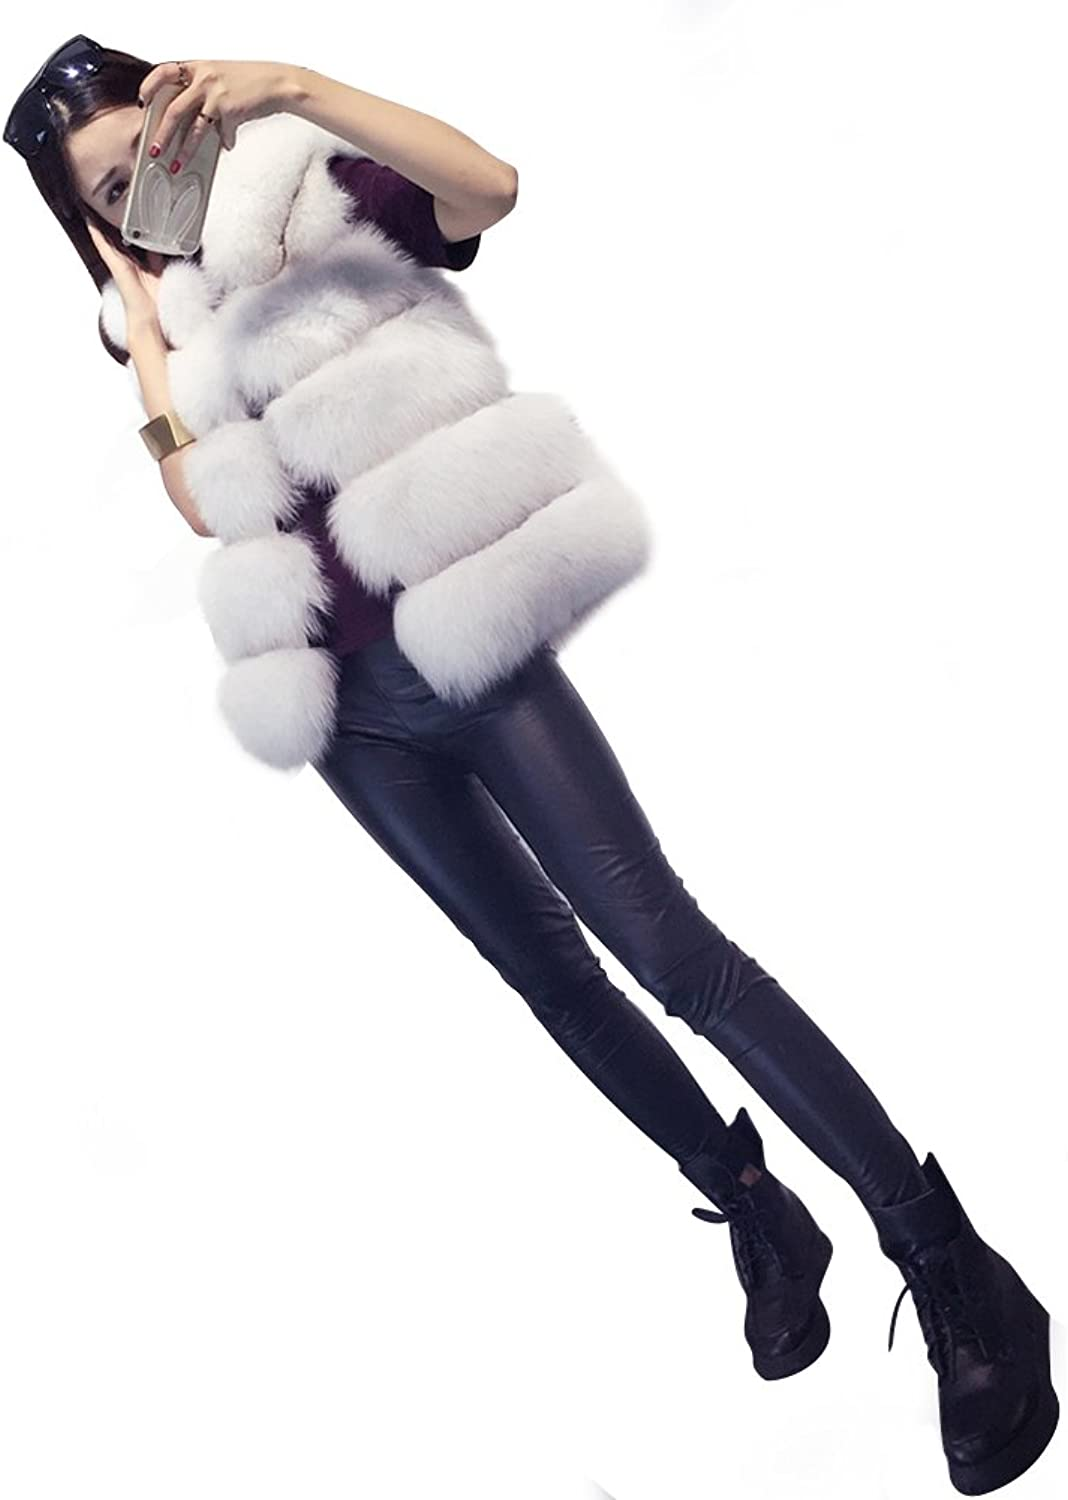 Fhillinuo Faux Mink Fur Thickness Vest Sleeveless with Hood for Women